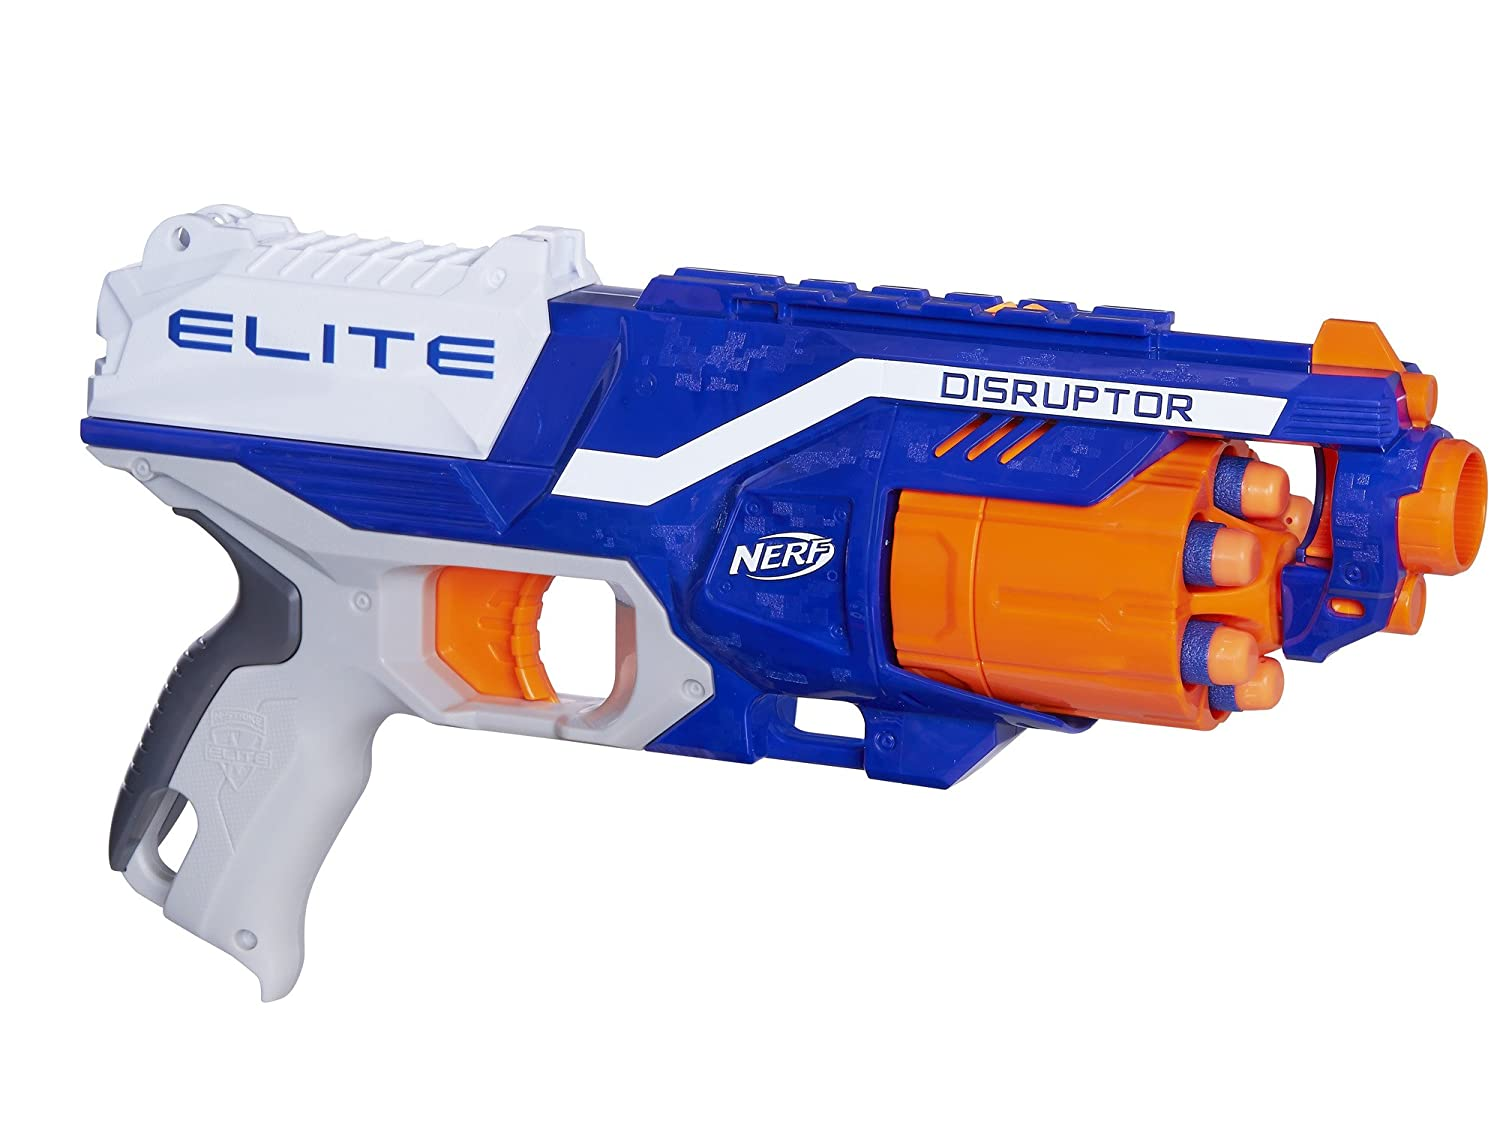 Long Strike CS-6 Nerf Gun - $35